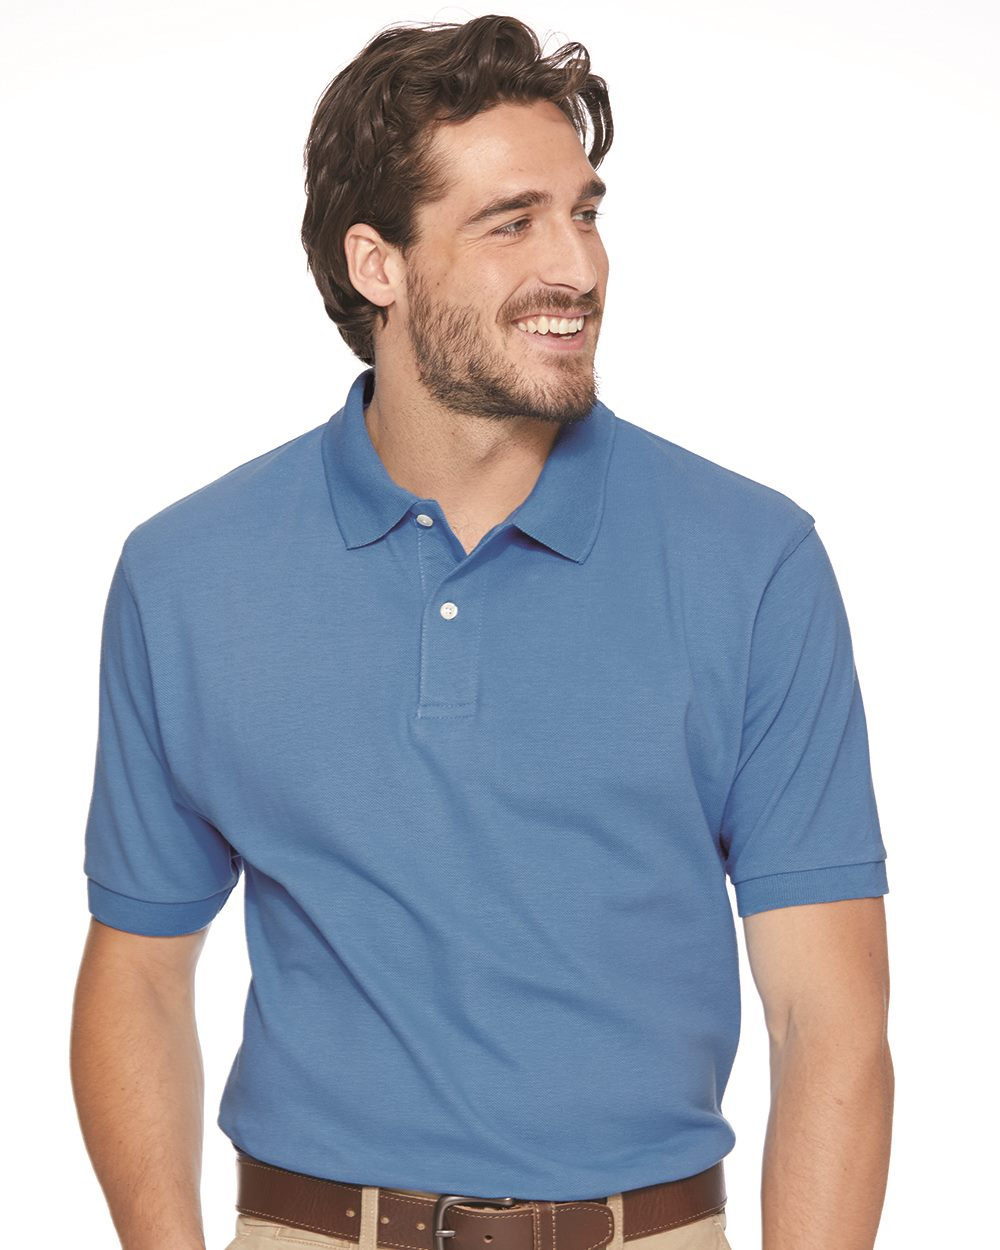 FeatherLite 100% Cotton Pique Sport Shirt - 2100